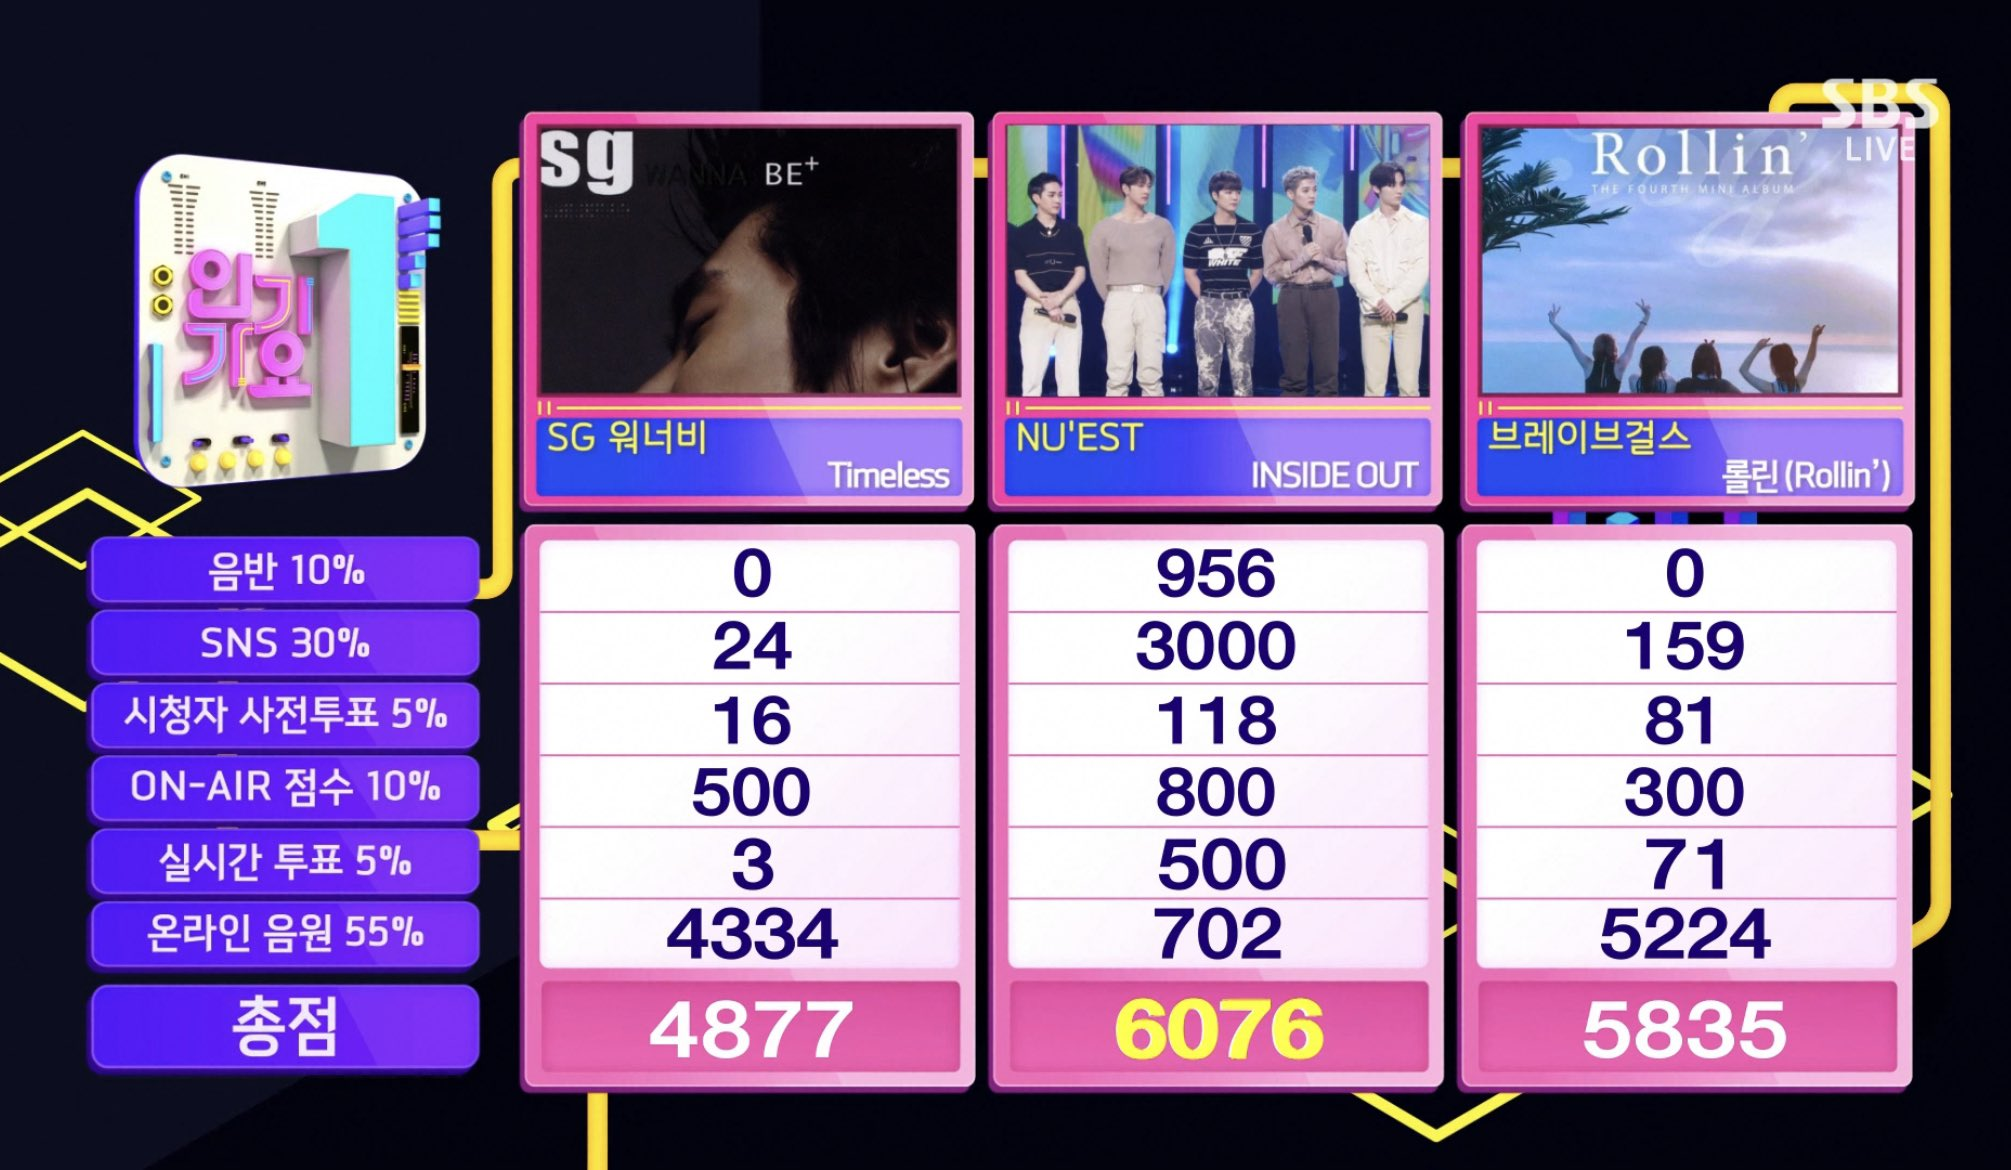 """NU'EST Concludes """"INSIDE OUT"""" Promotions With #INSIDE_OUT_4thWIN"""